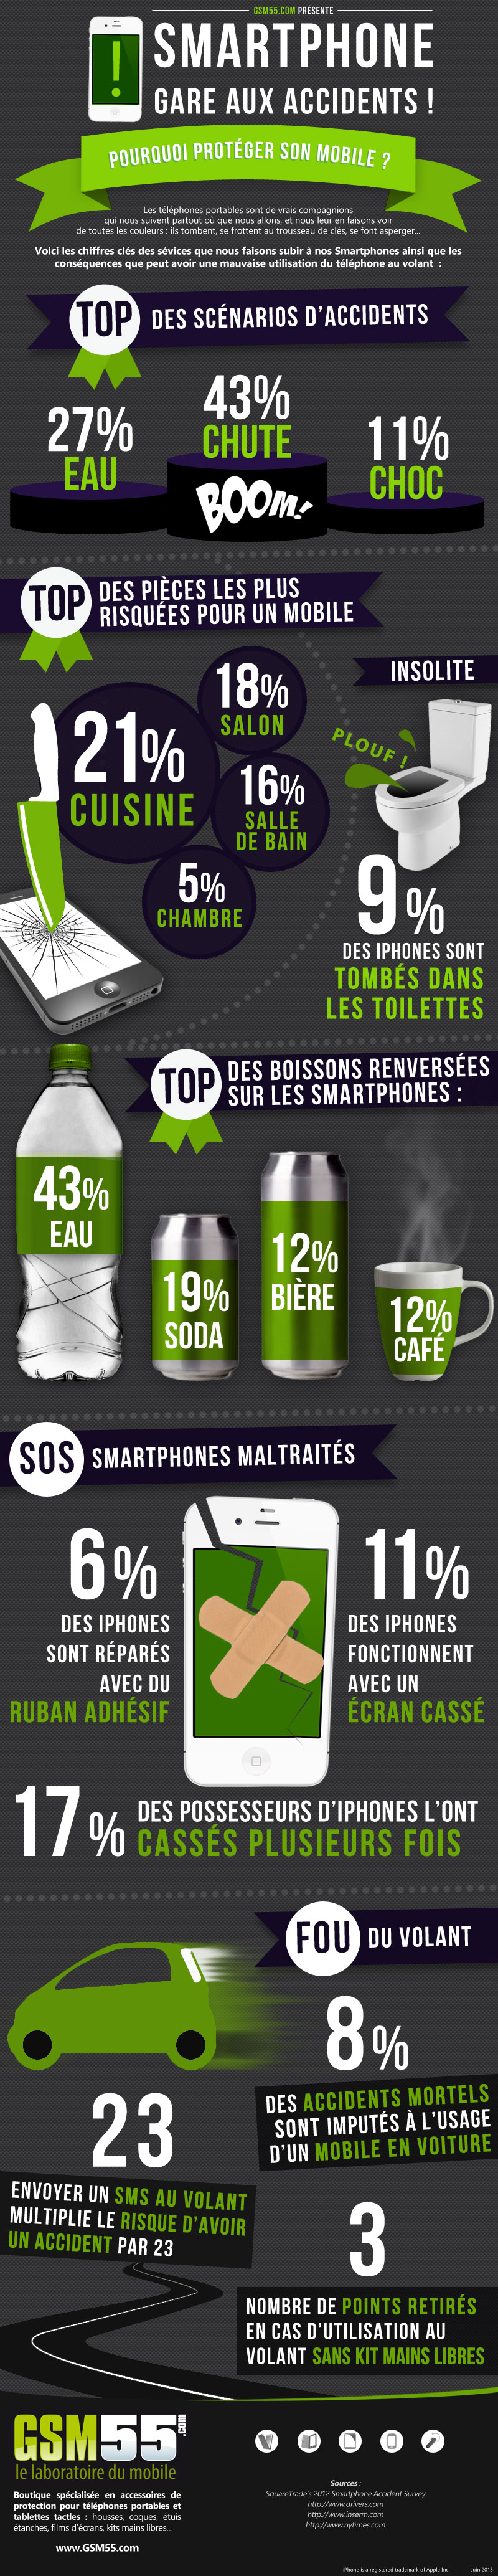 Infographie accidents smartphones